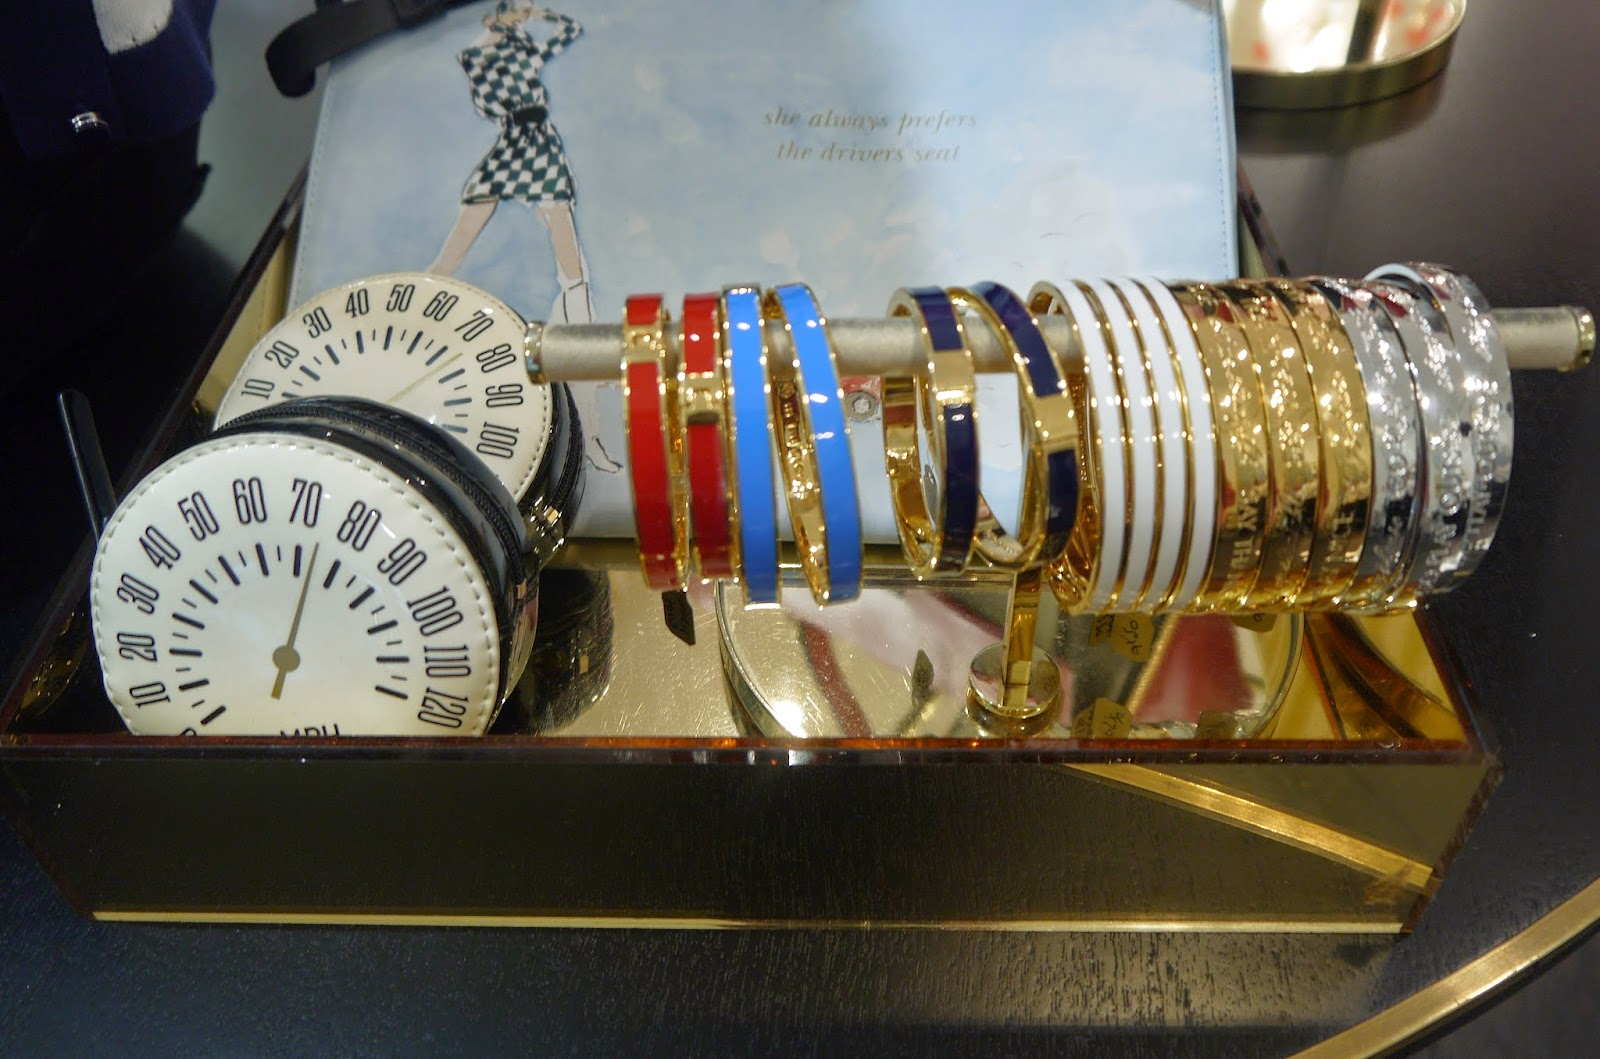 Bangles on Display at the Kate Spade Event